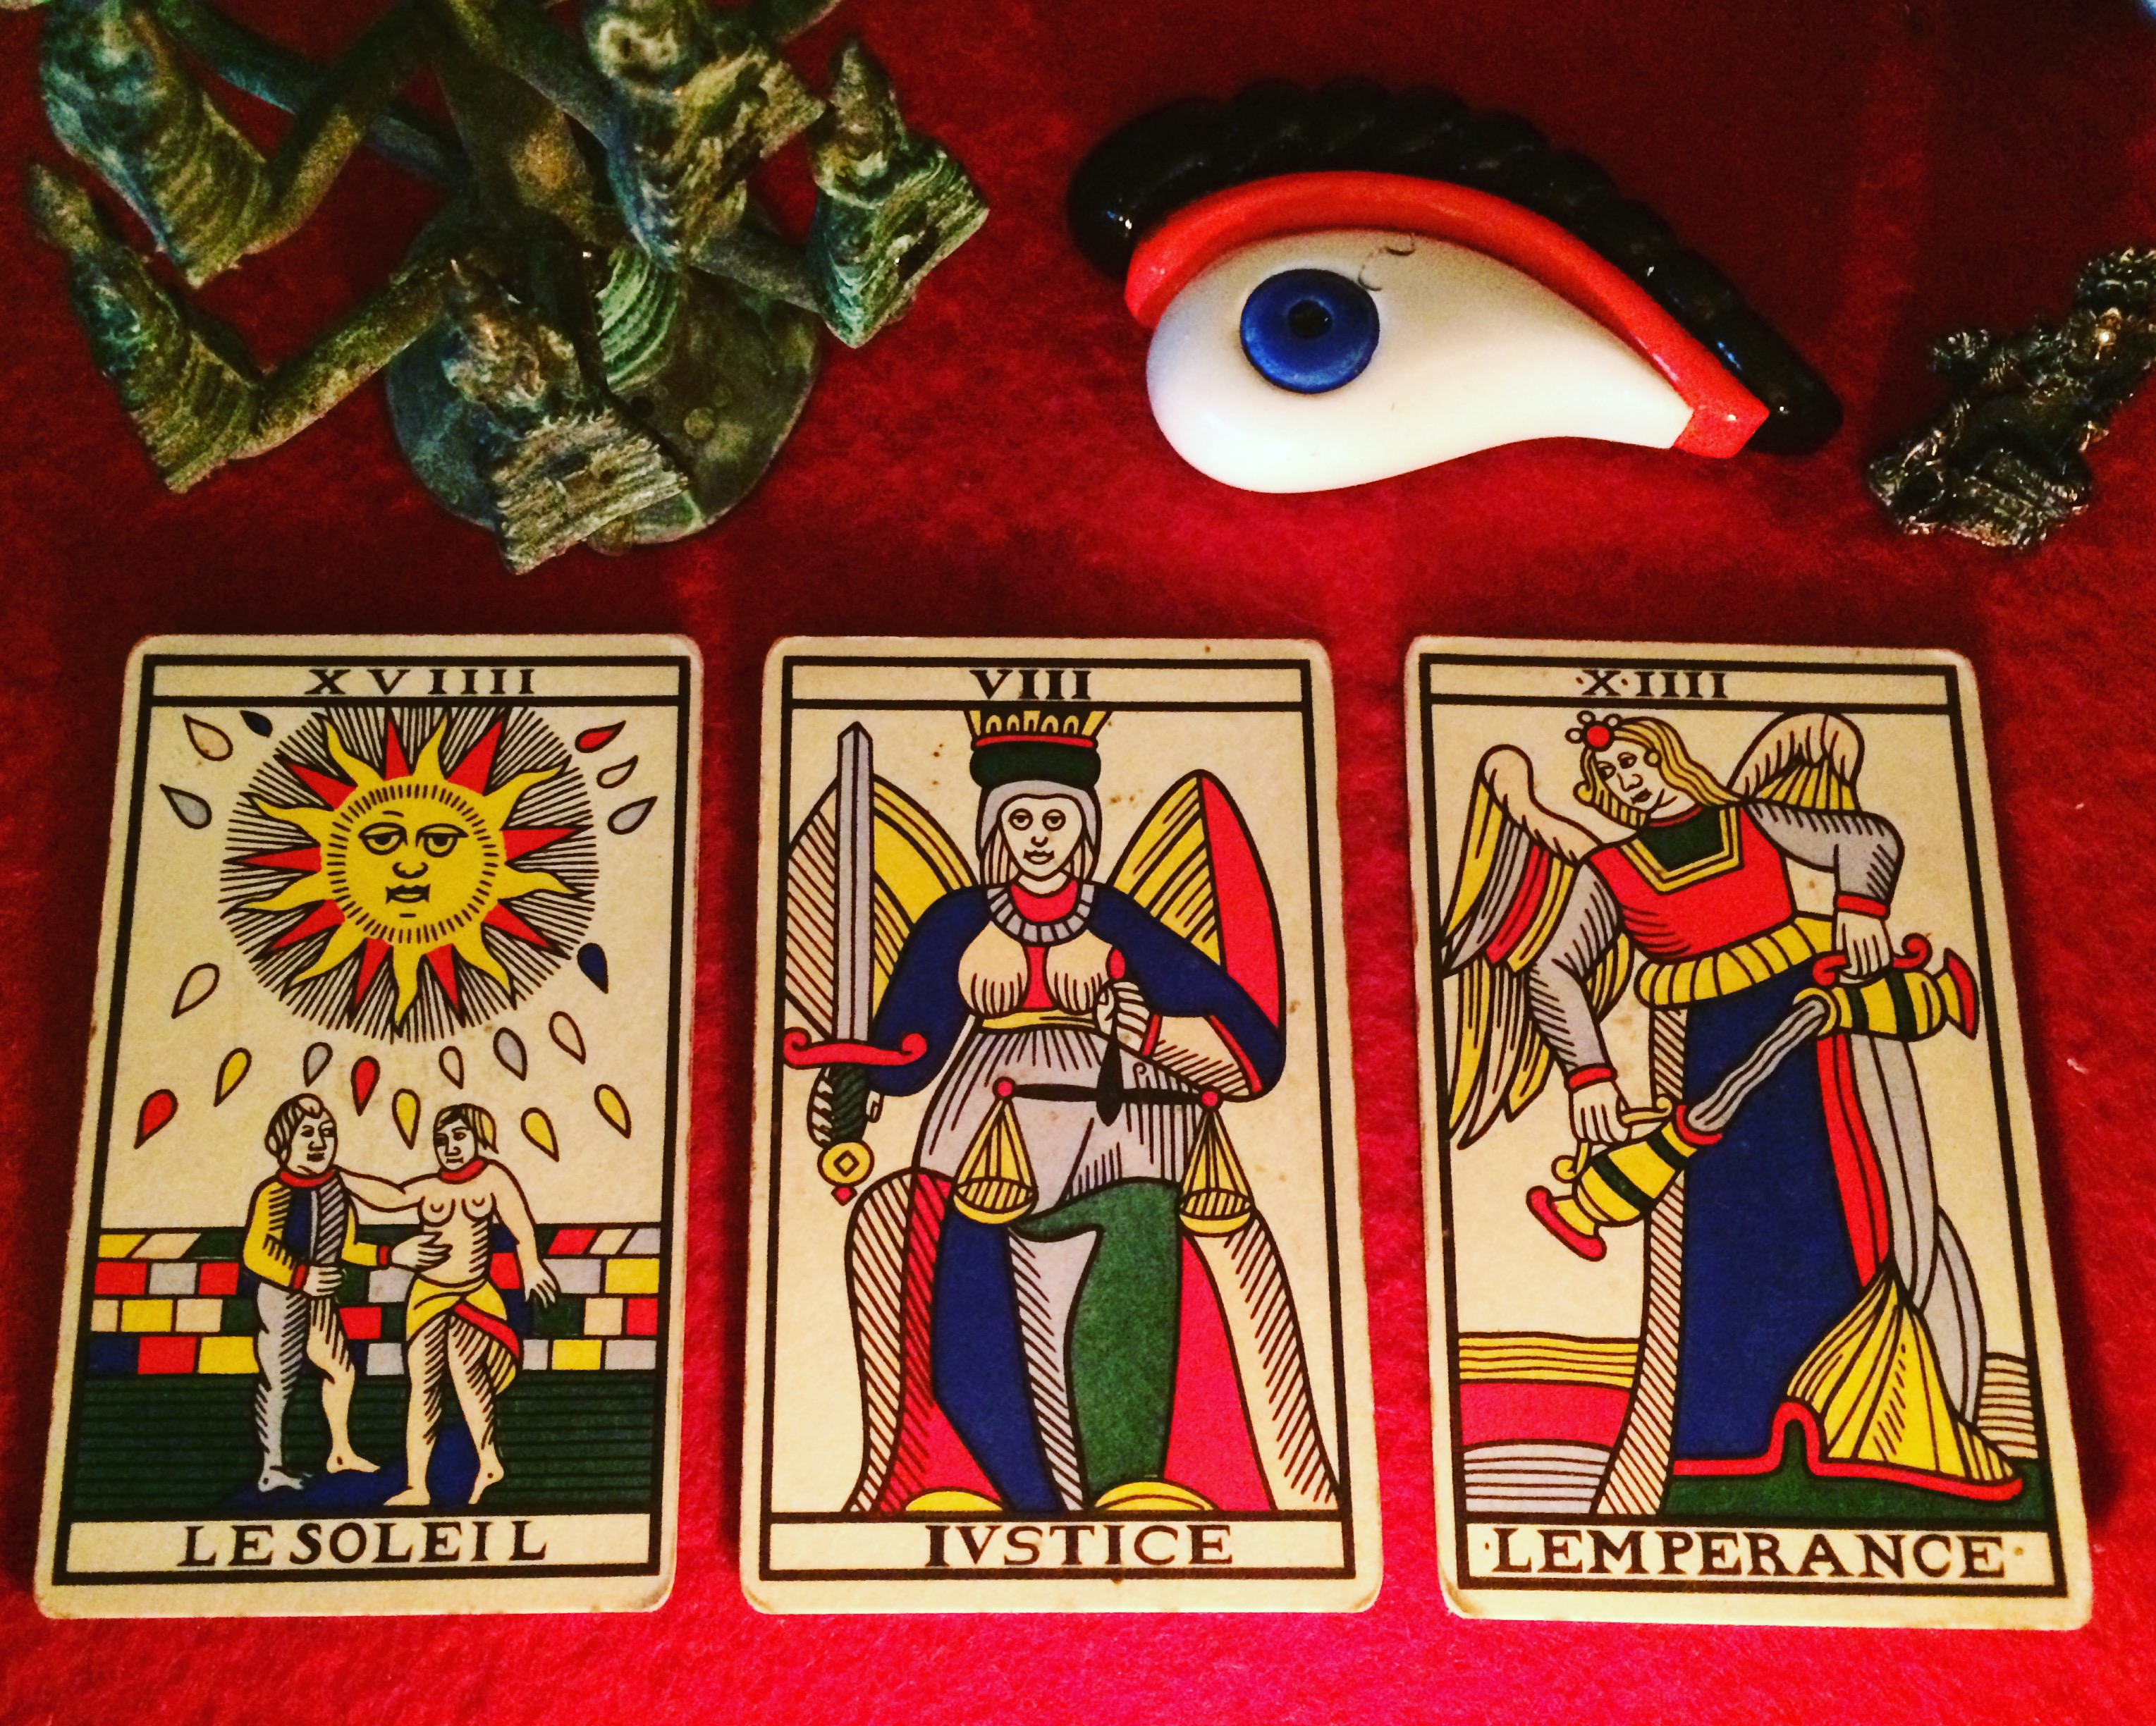 three tarot cards laid out on a red cloth:  the sun, justice, and temperance